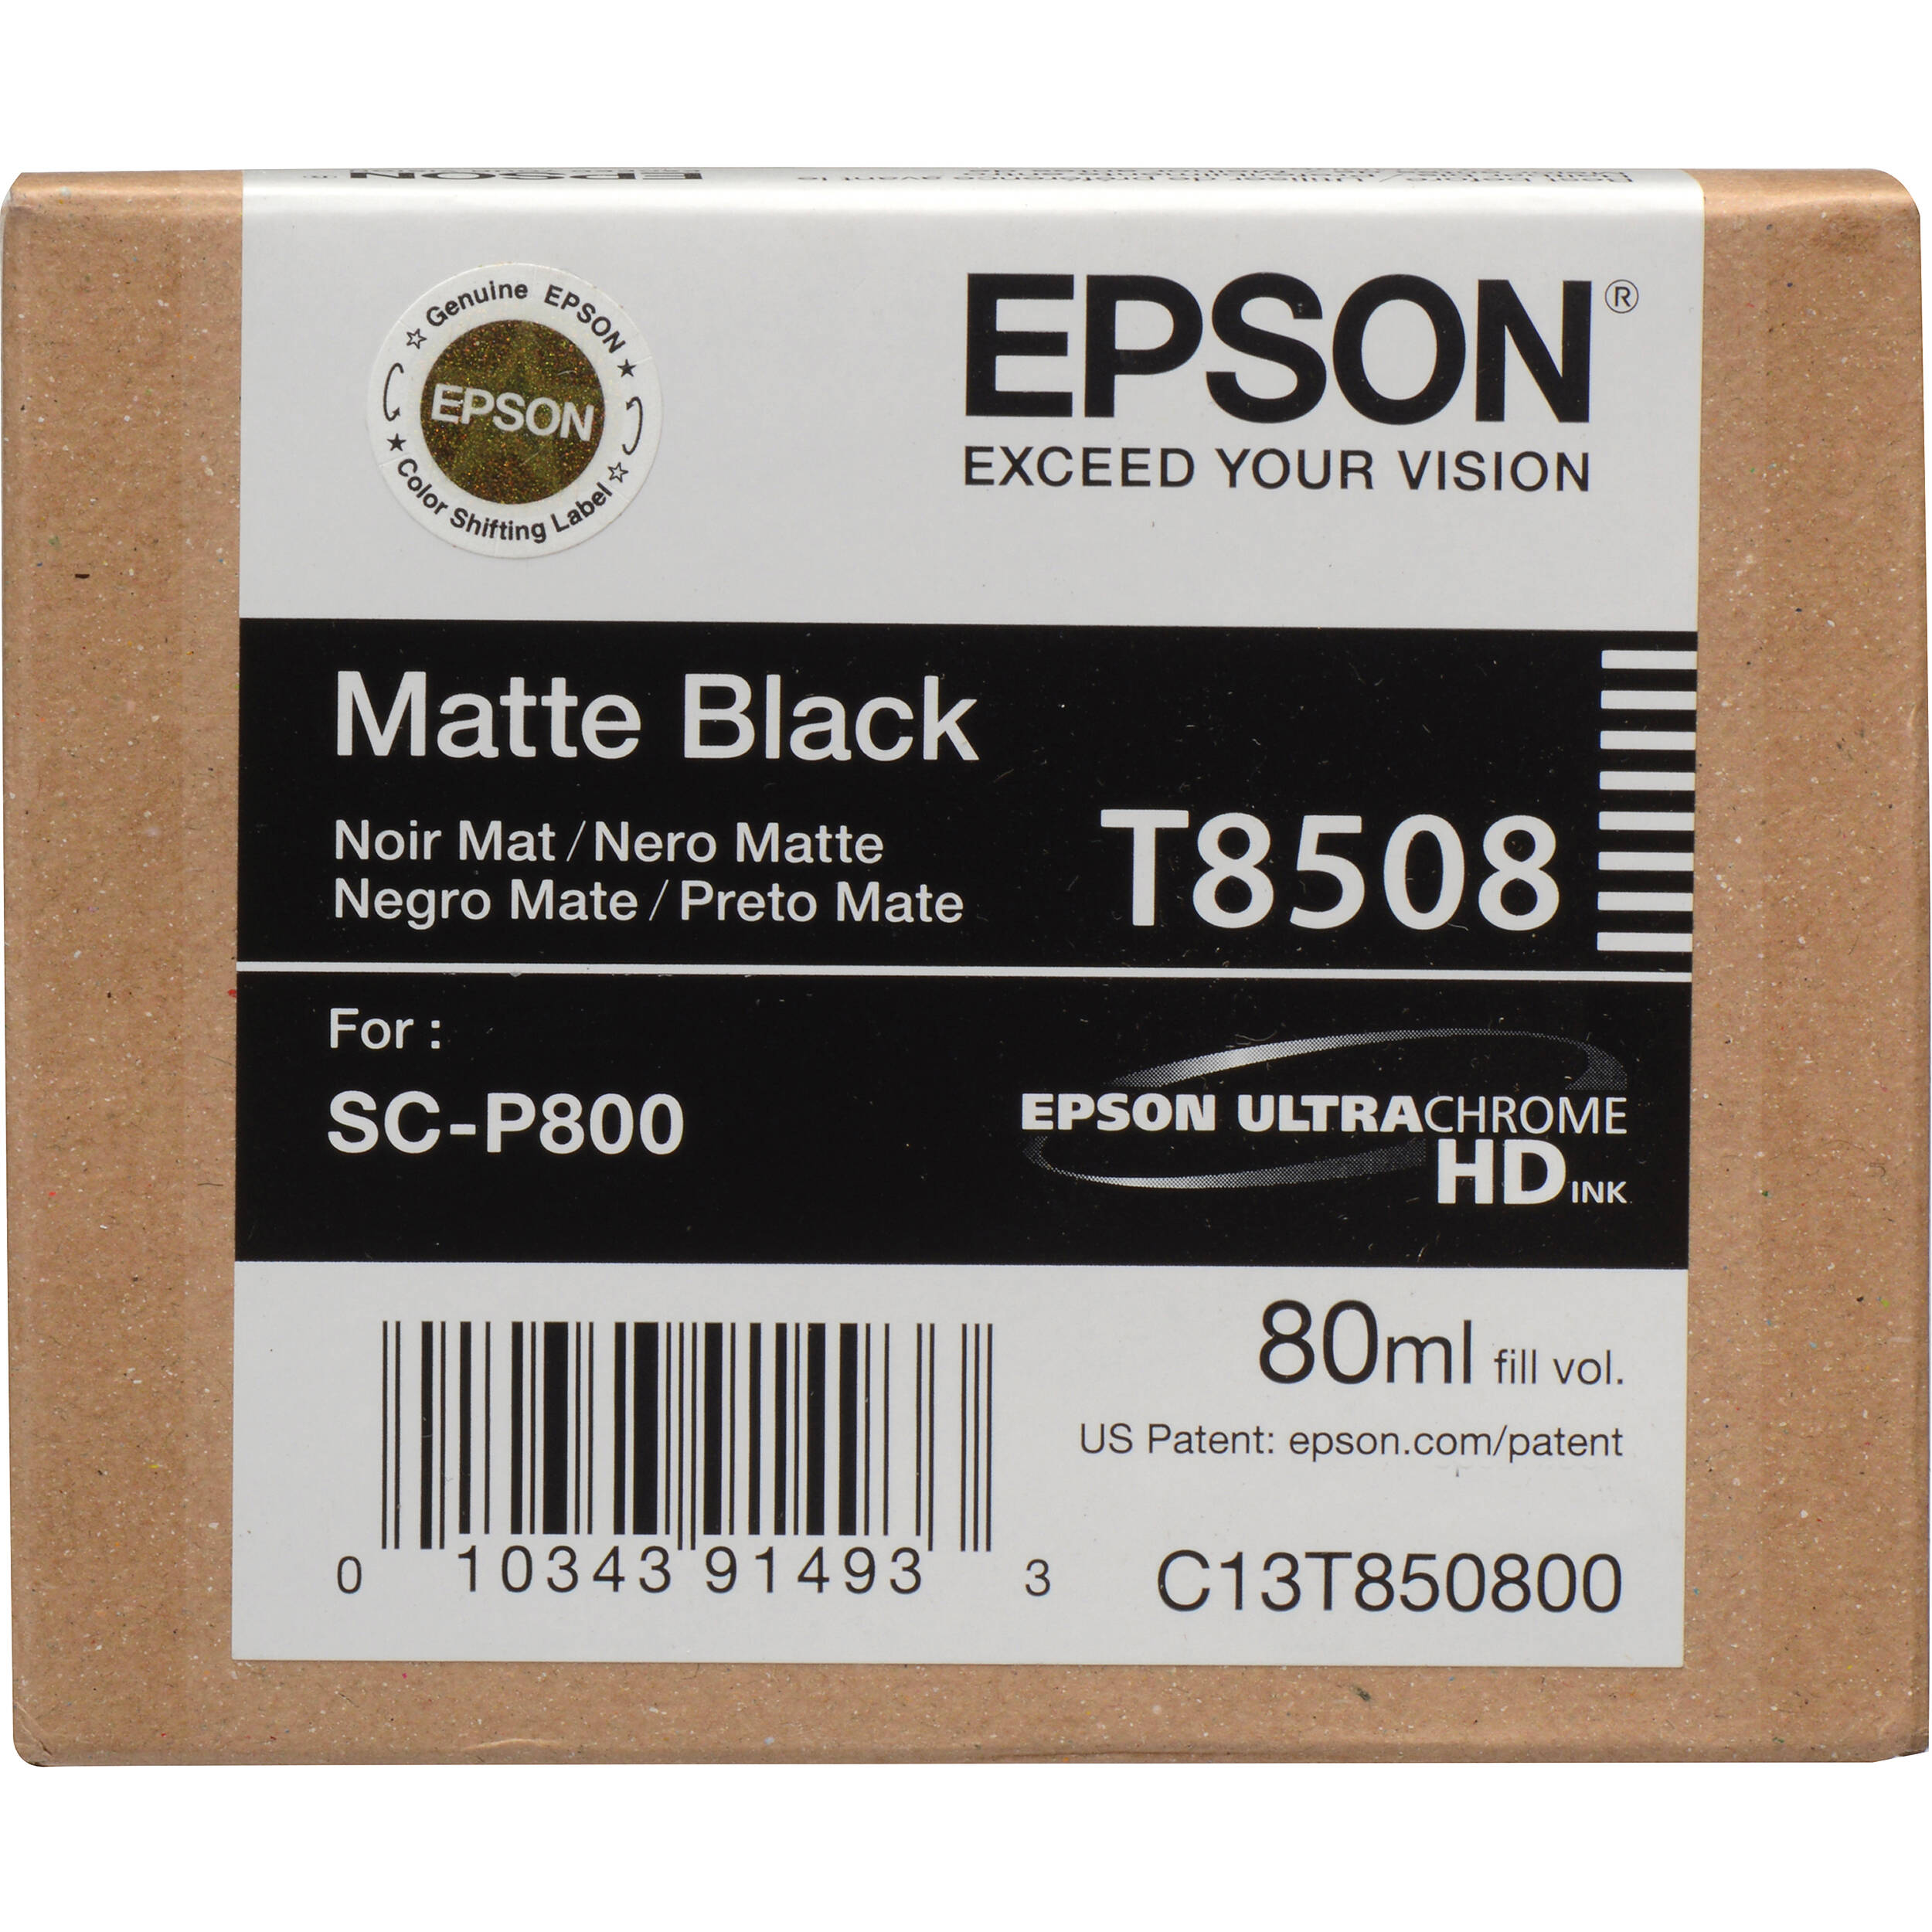 Epson Ink Cartridges for Standard Printers | B&H Photo Video